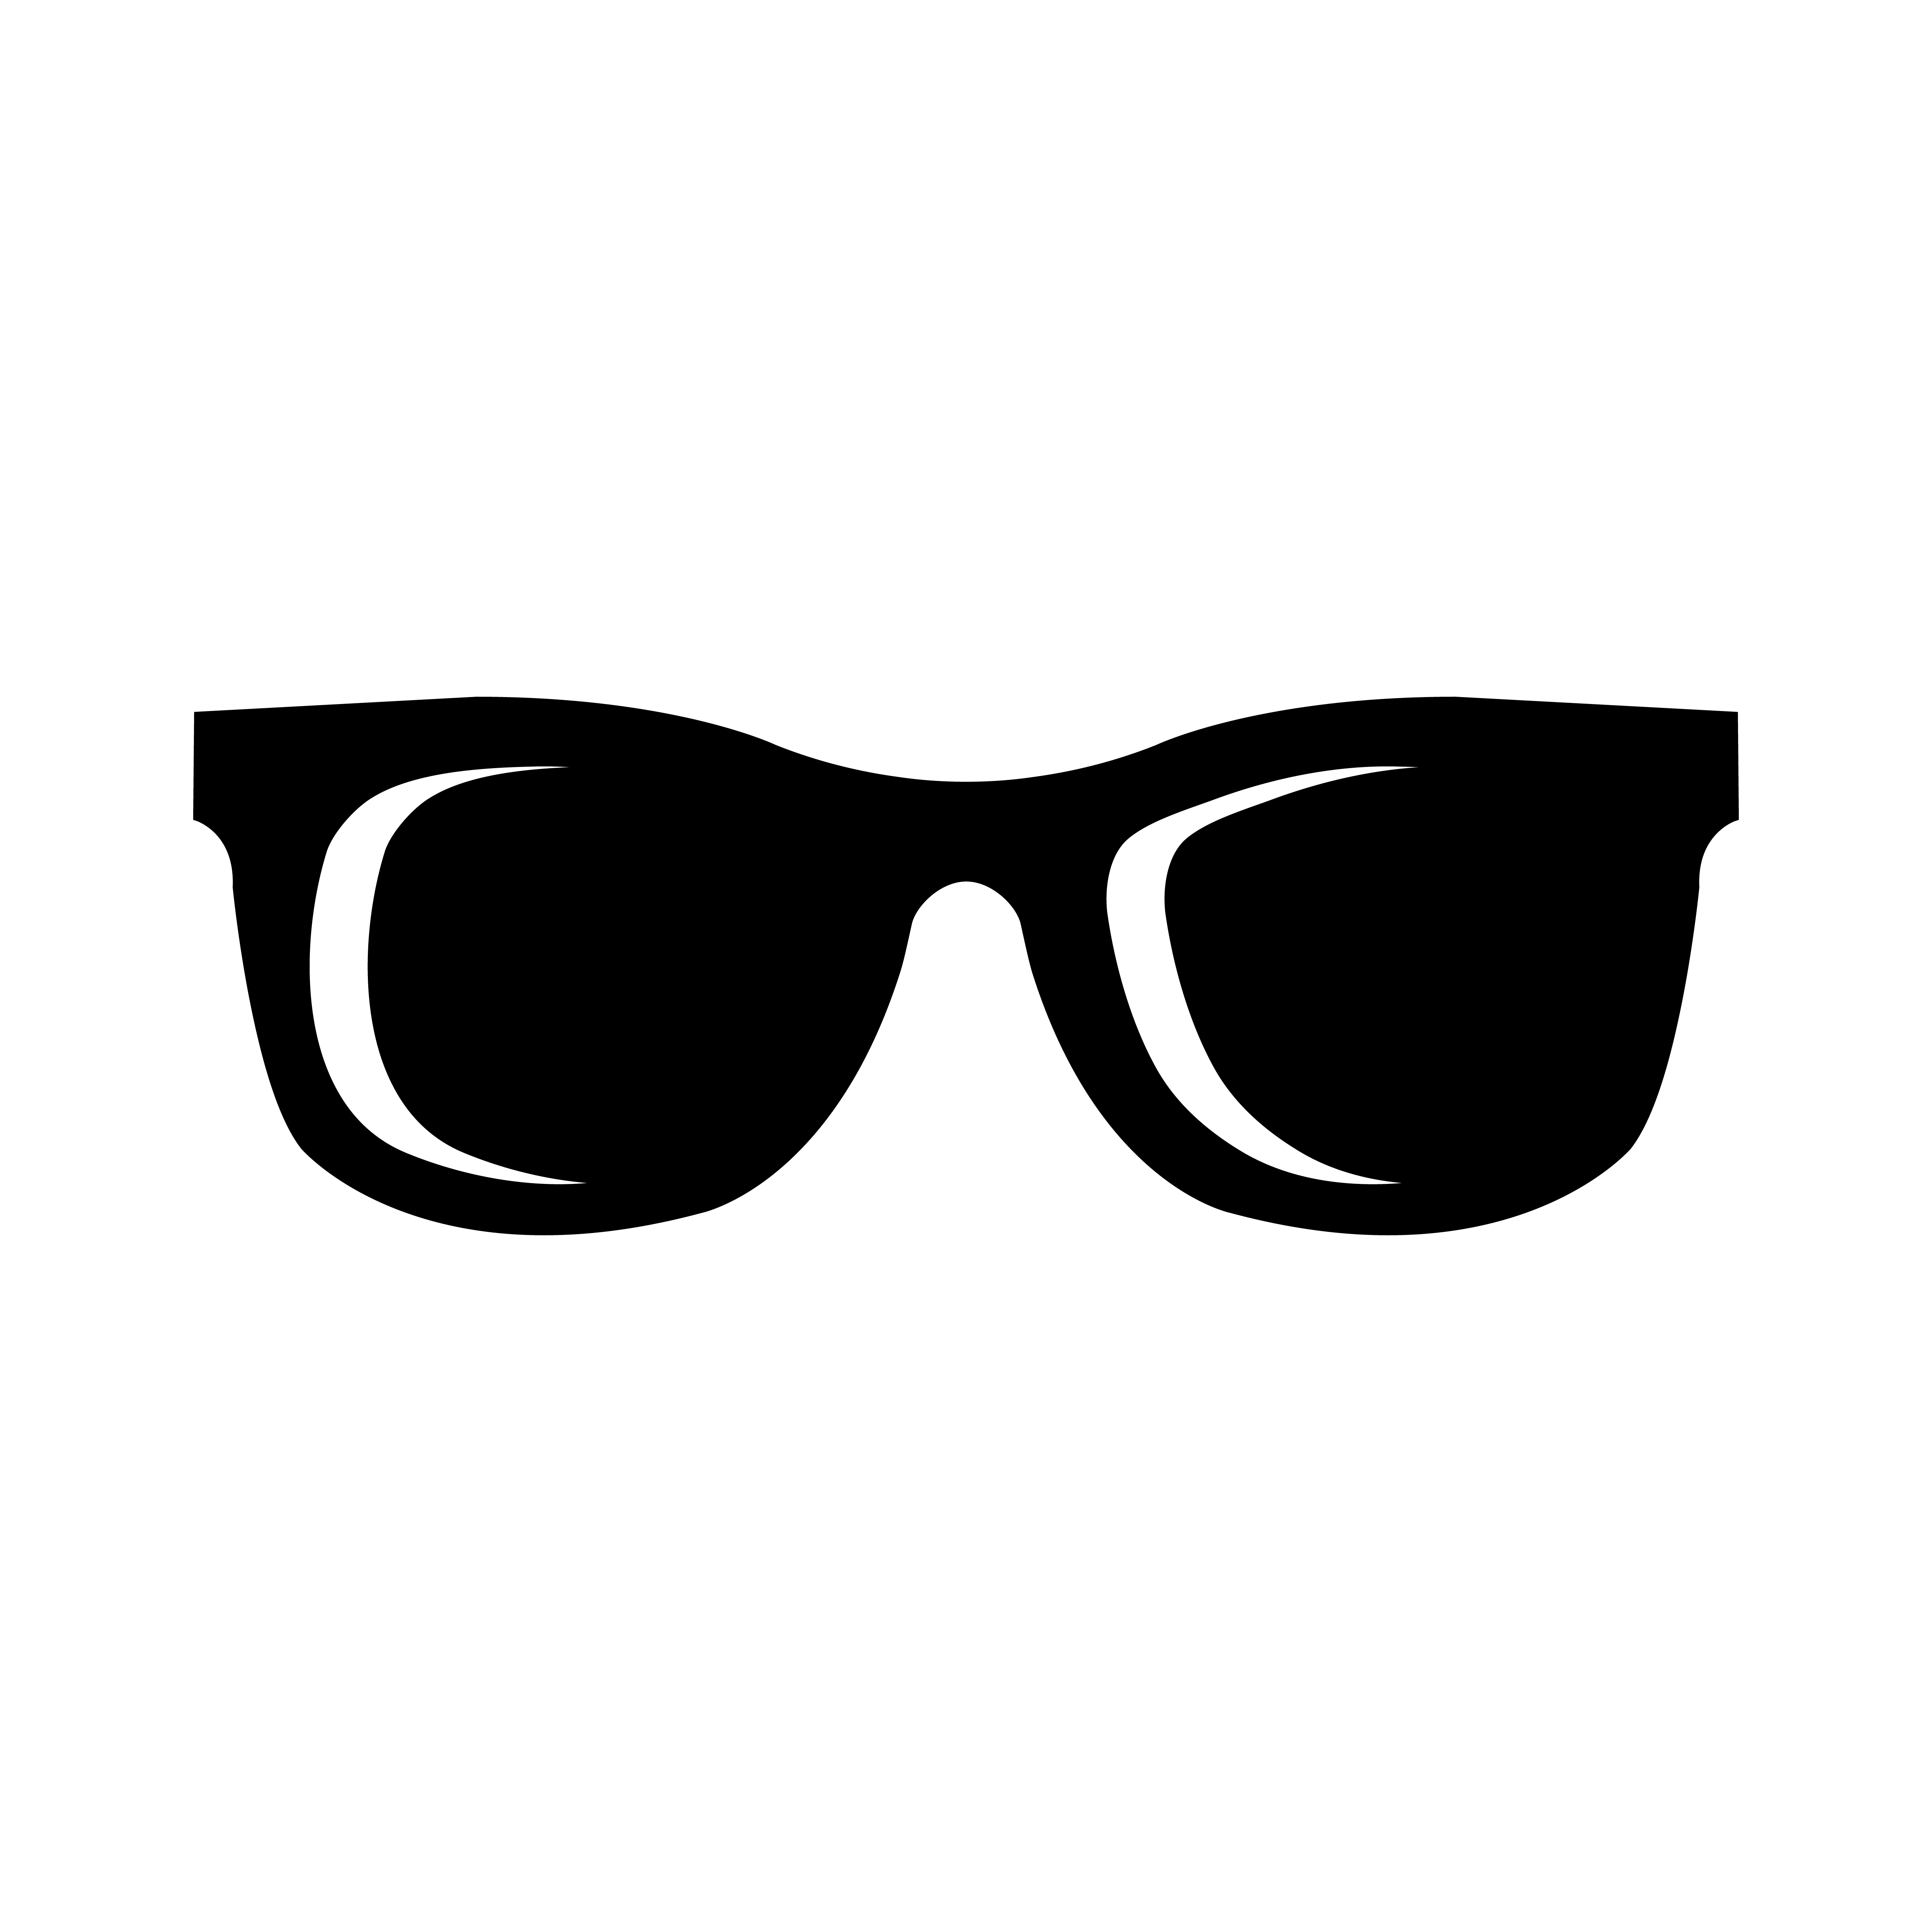 Cool Sunglasses Eye Frames vector icon - Download Free ...